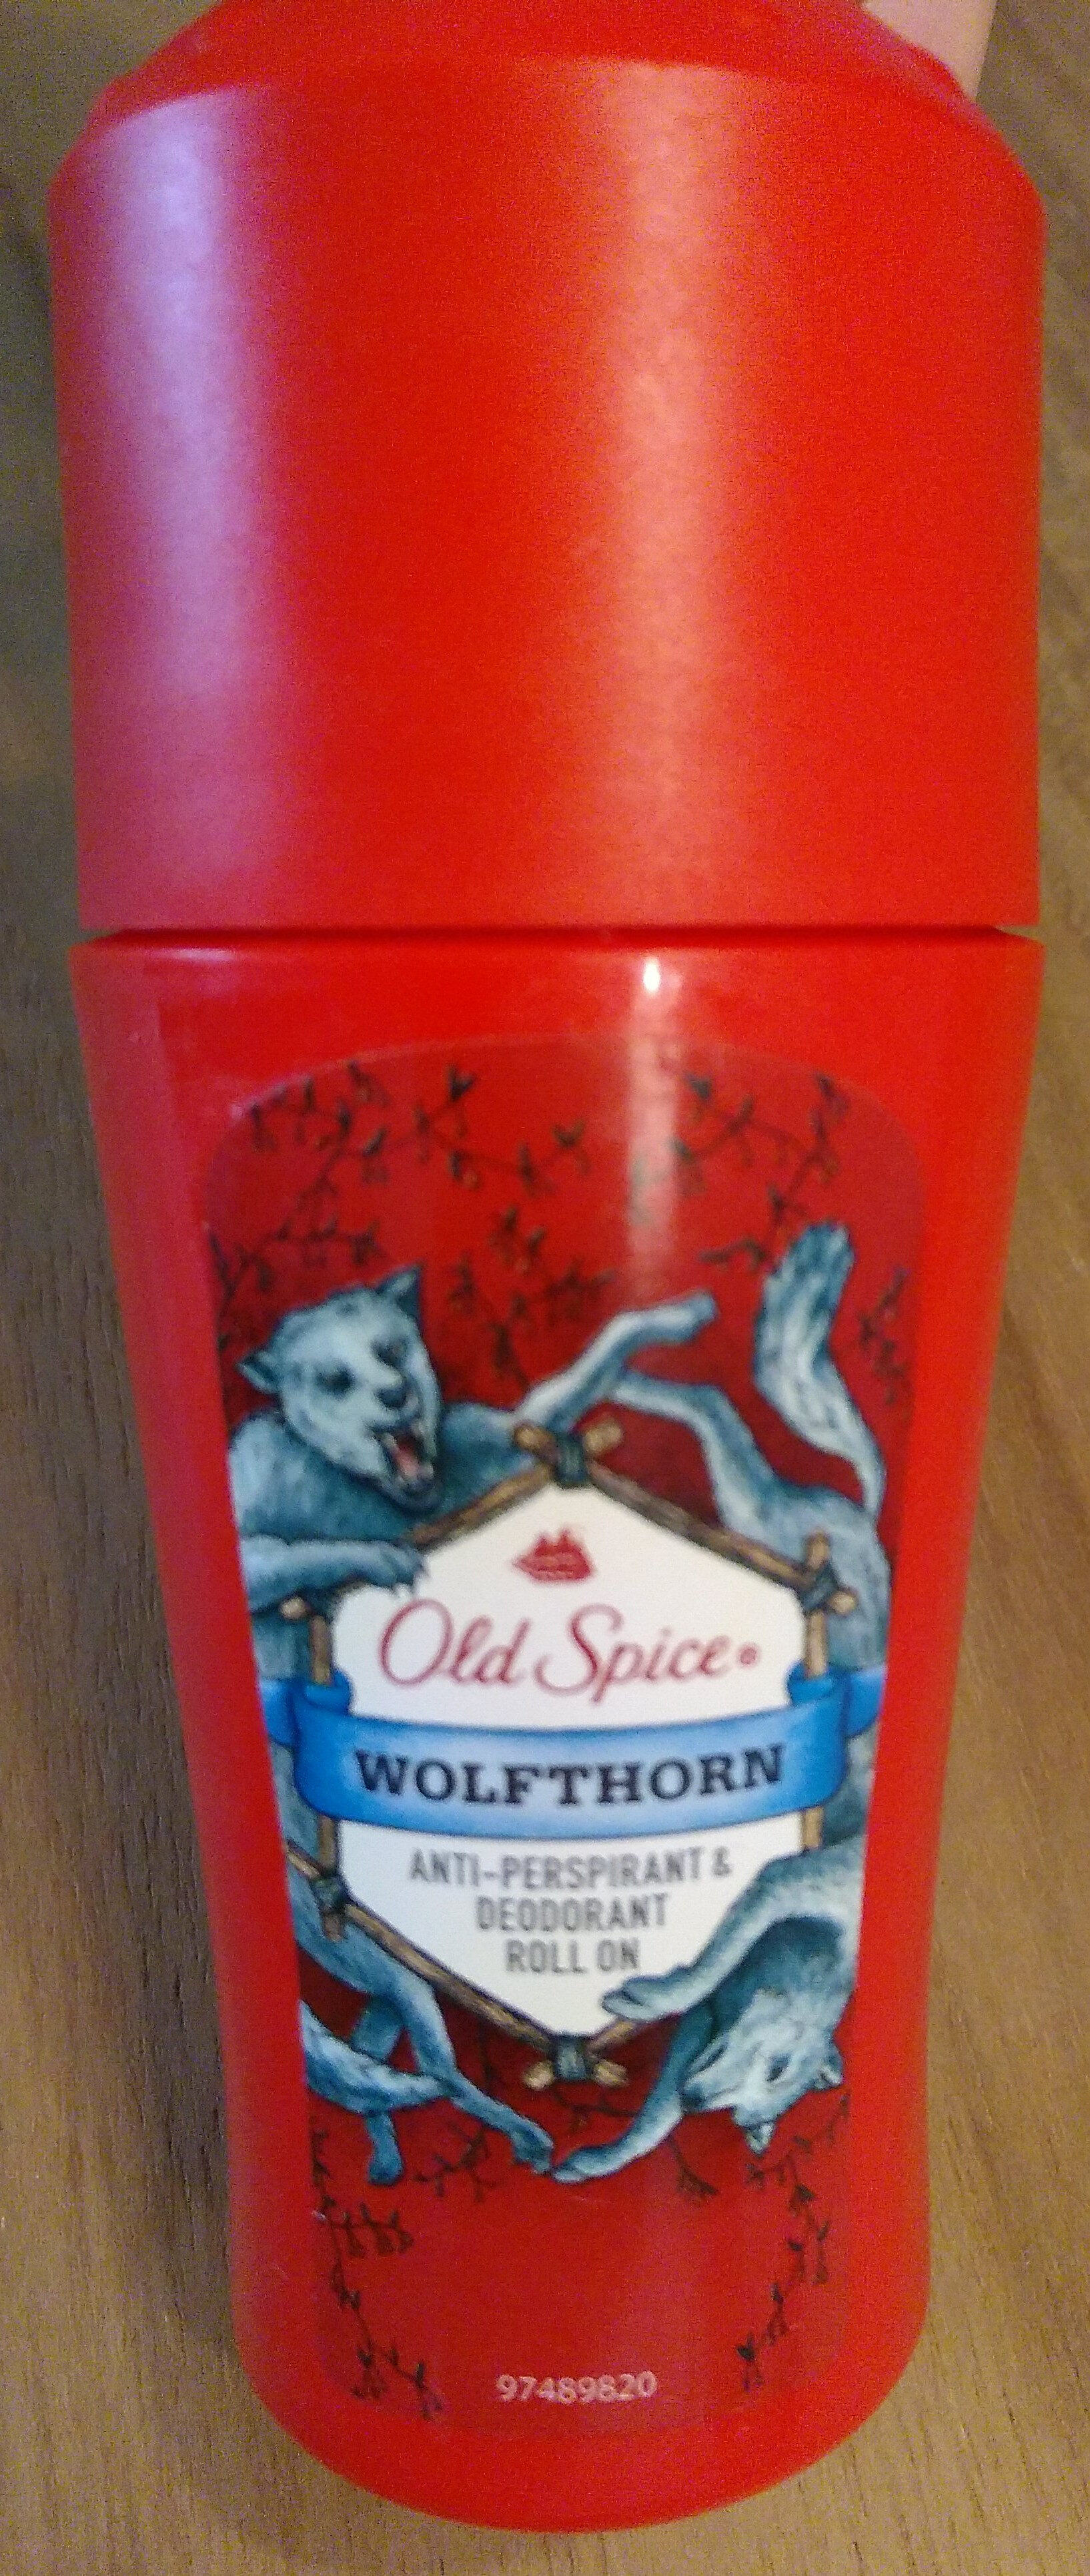 Wolfthorn - Product - en